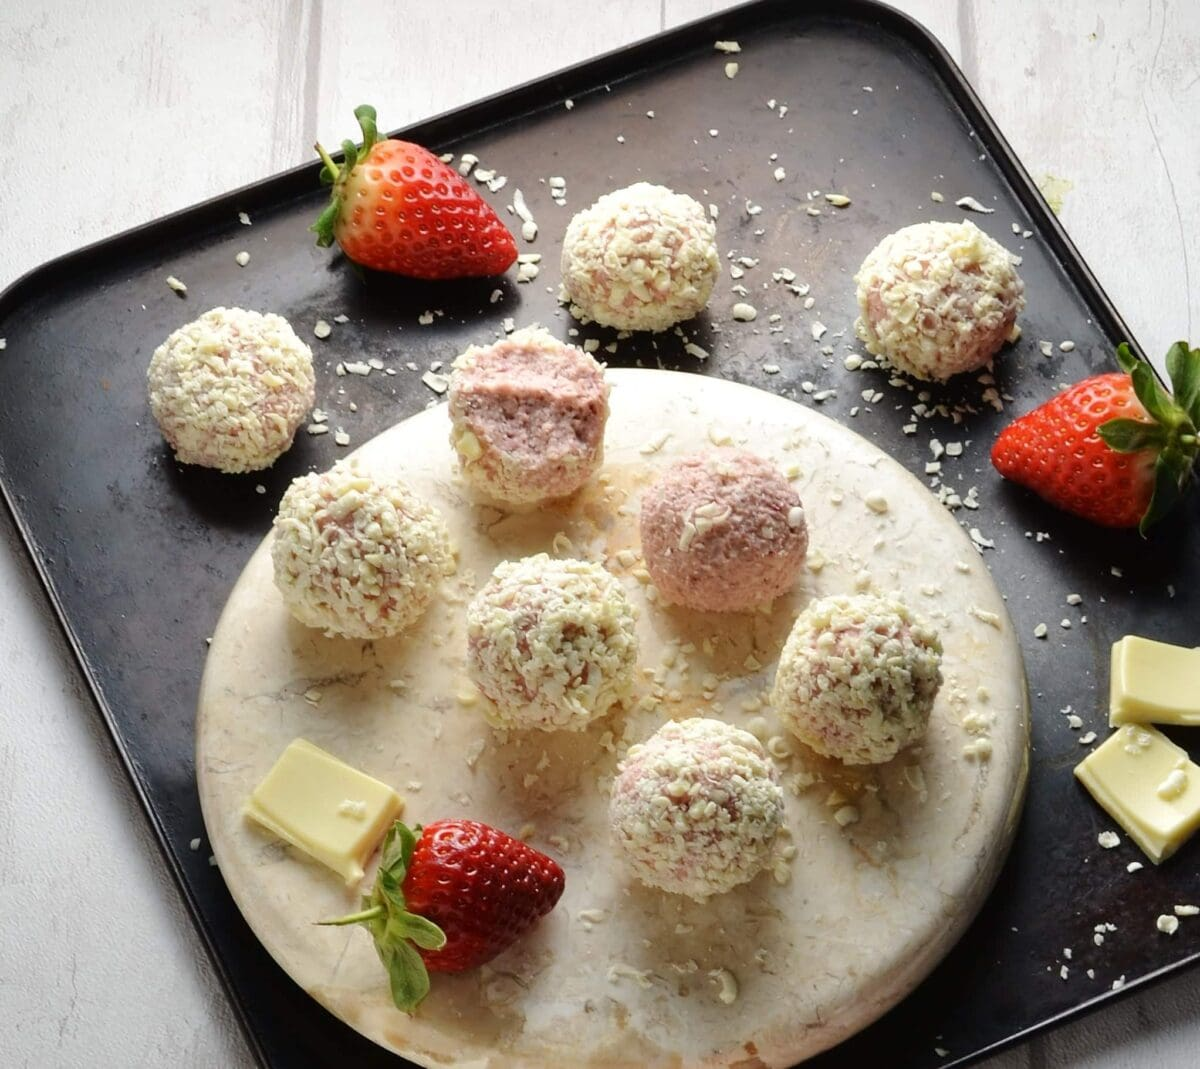 Strawberry cheesecake balls on round marble plate with strawberries and white chocolate on oven tray.